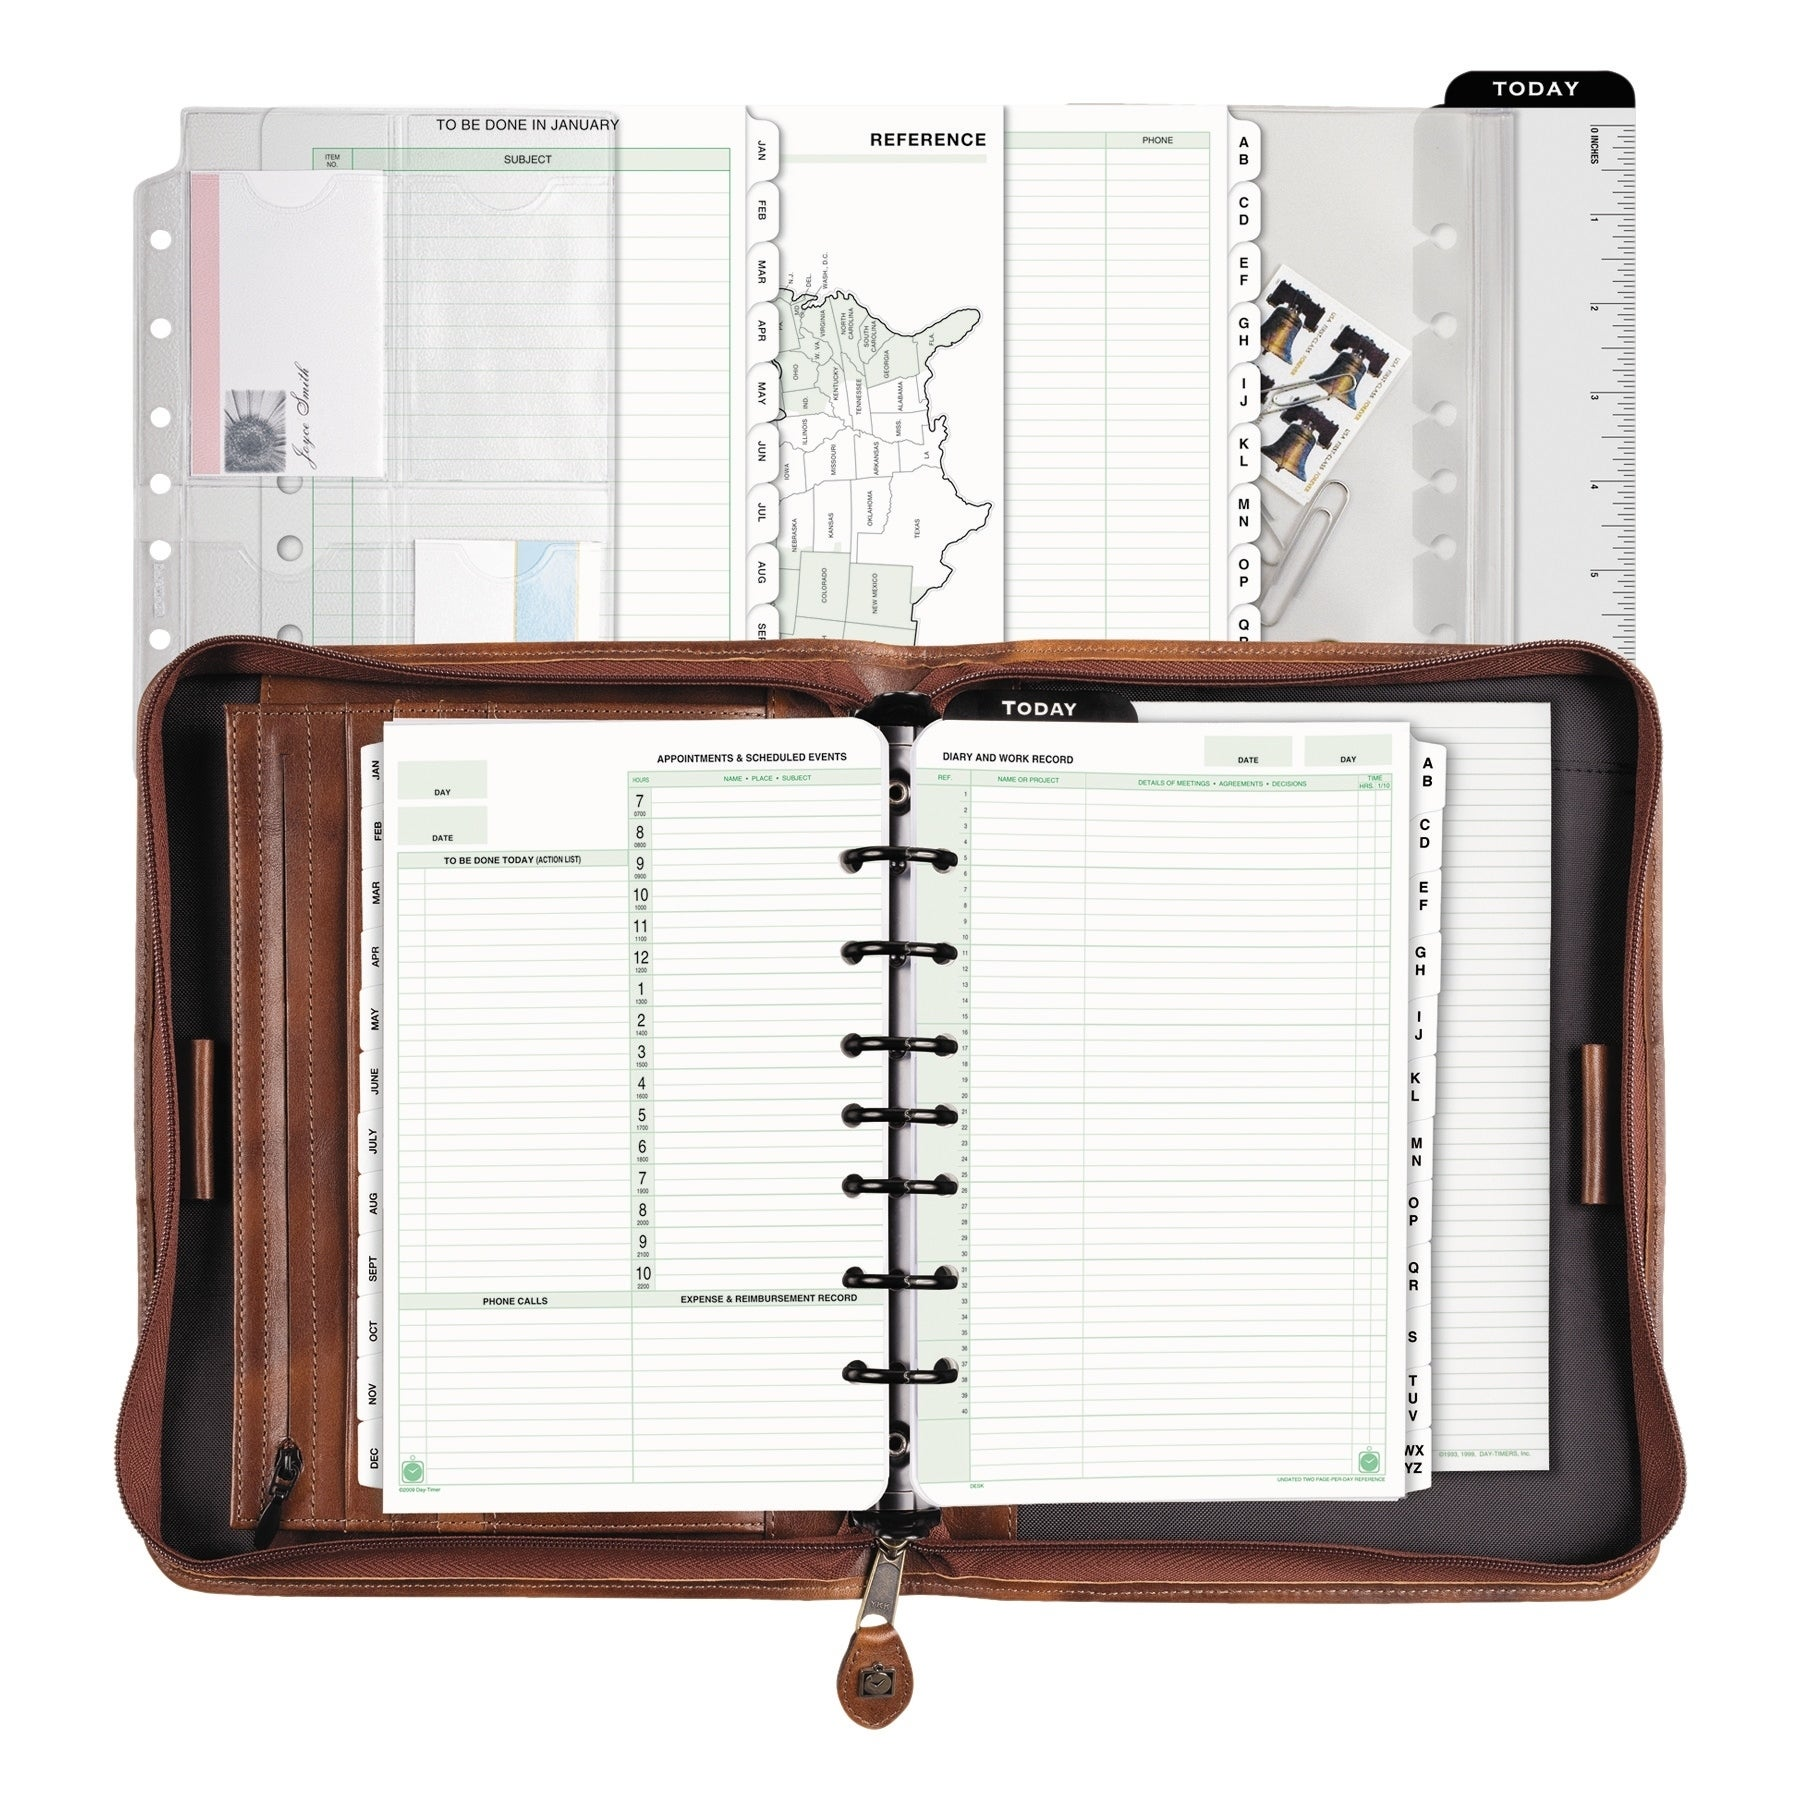 Office & School Supplies Logical Animals Series Calendars Plan Notebook Cute Mini Office Cat Dog Desk Paper Calendar Gift Daily Plan Table Manage The Schedule